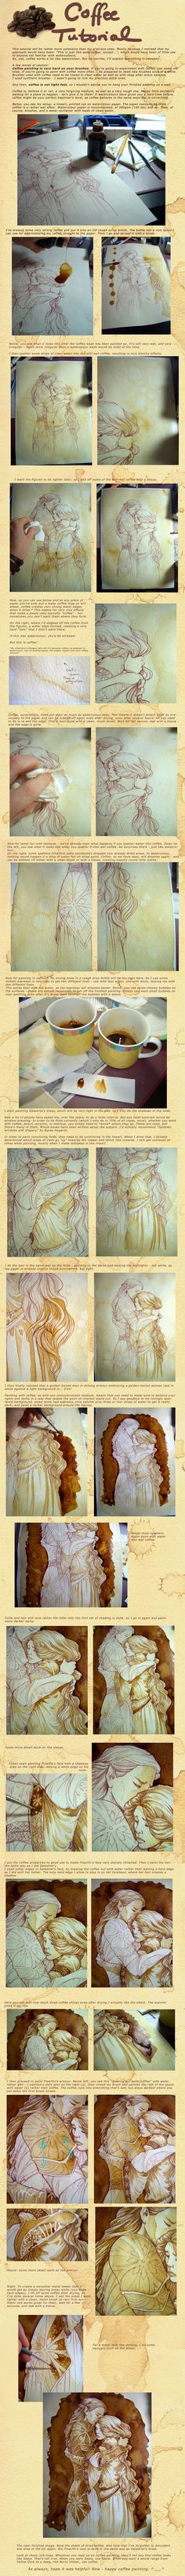 Painting with Coffee by =Gold-Seven on deviantART